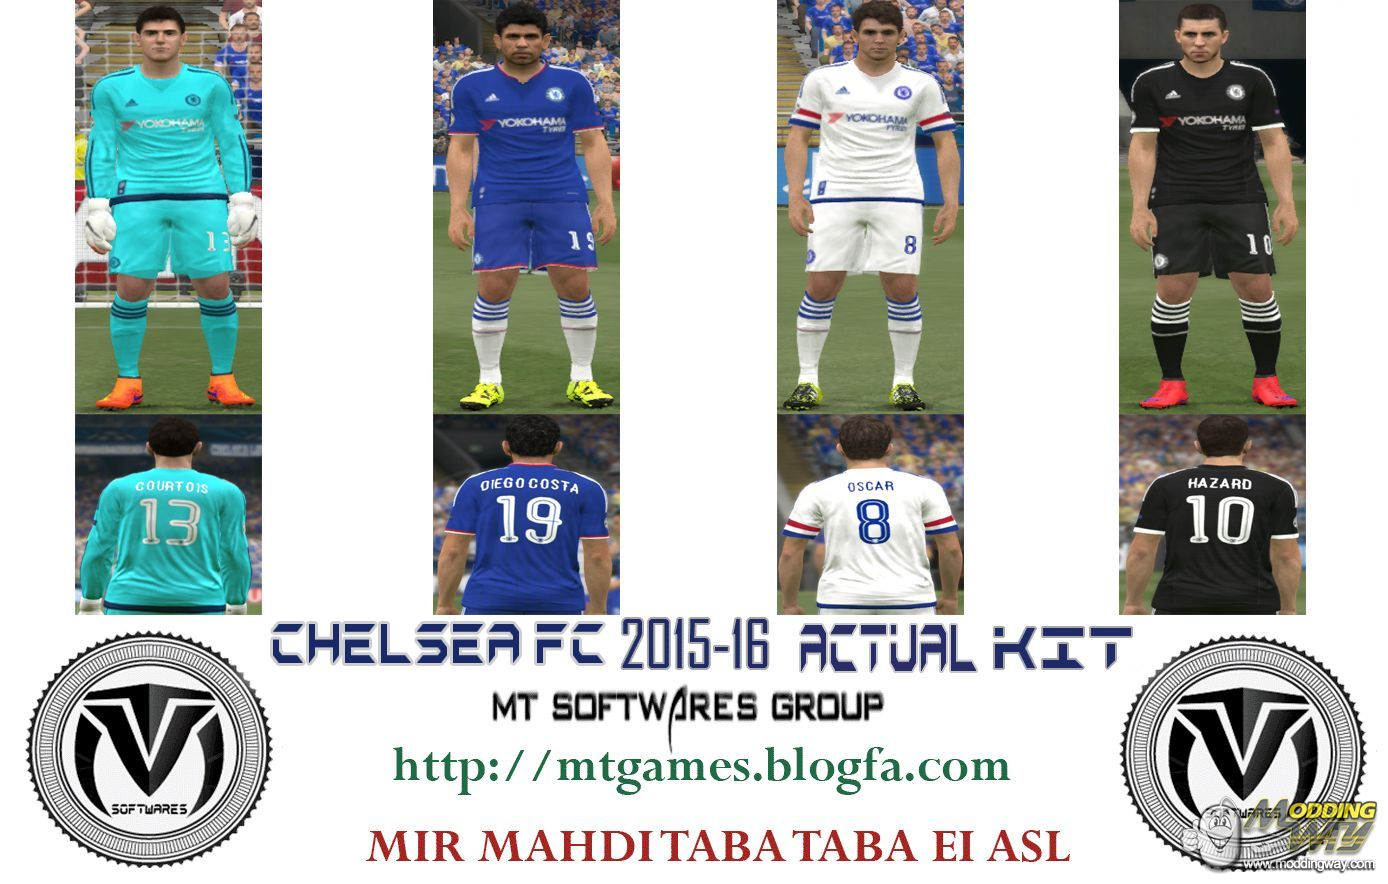 a50965d338c Chelsea FC 2015-16 Kit by MT Games - Pro Evolution Soccer 2015 at ModdingWay